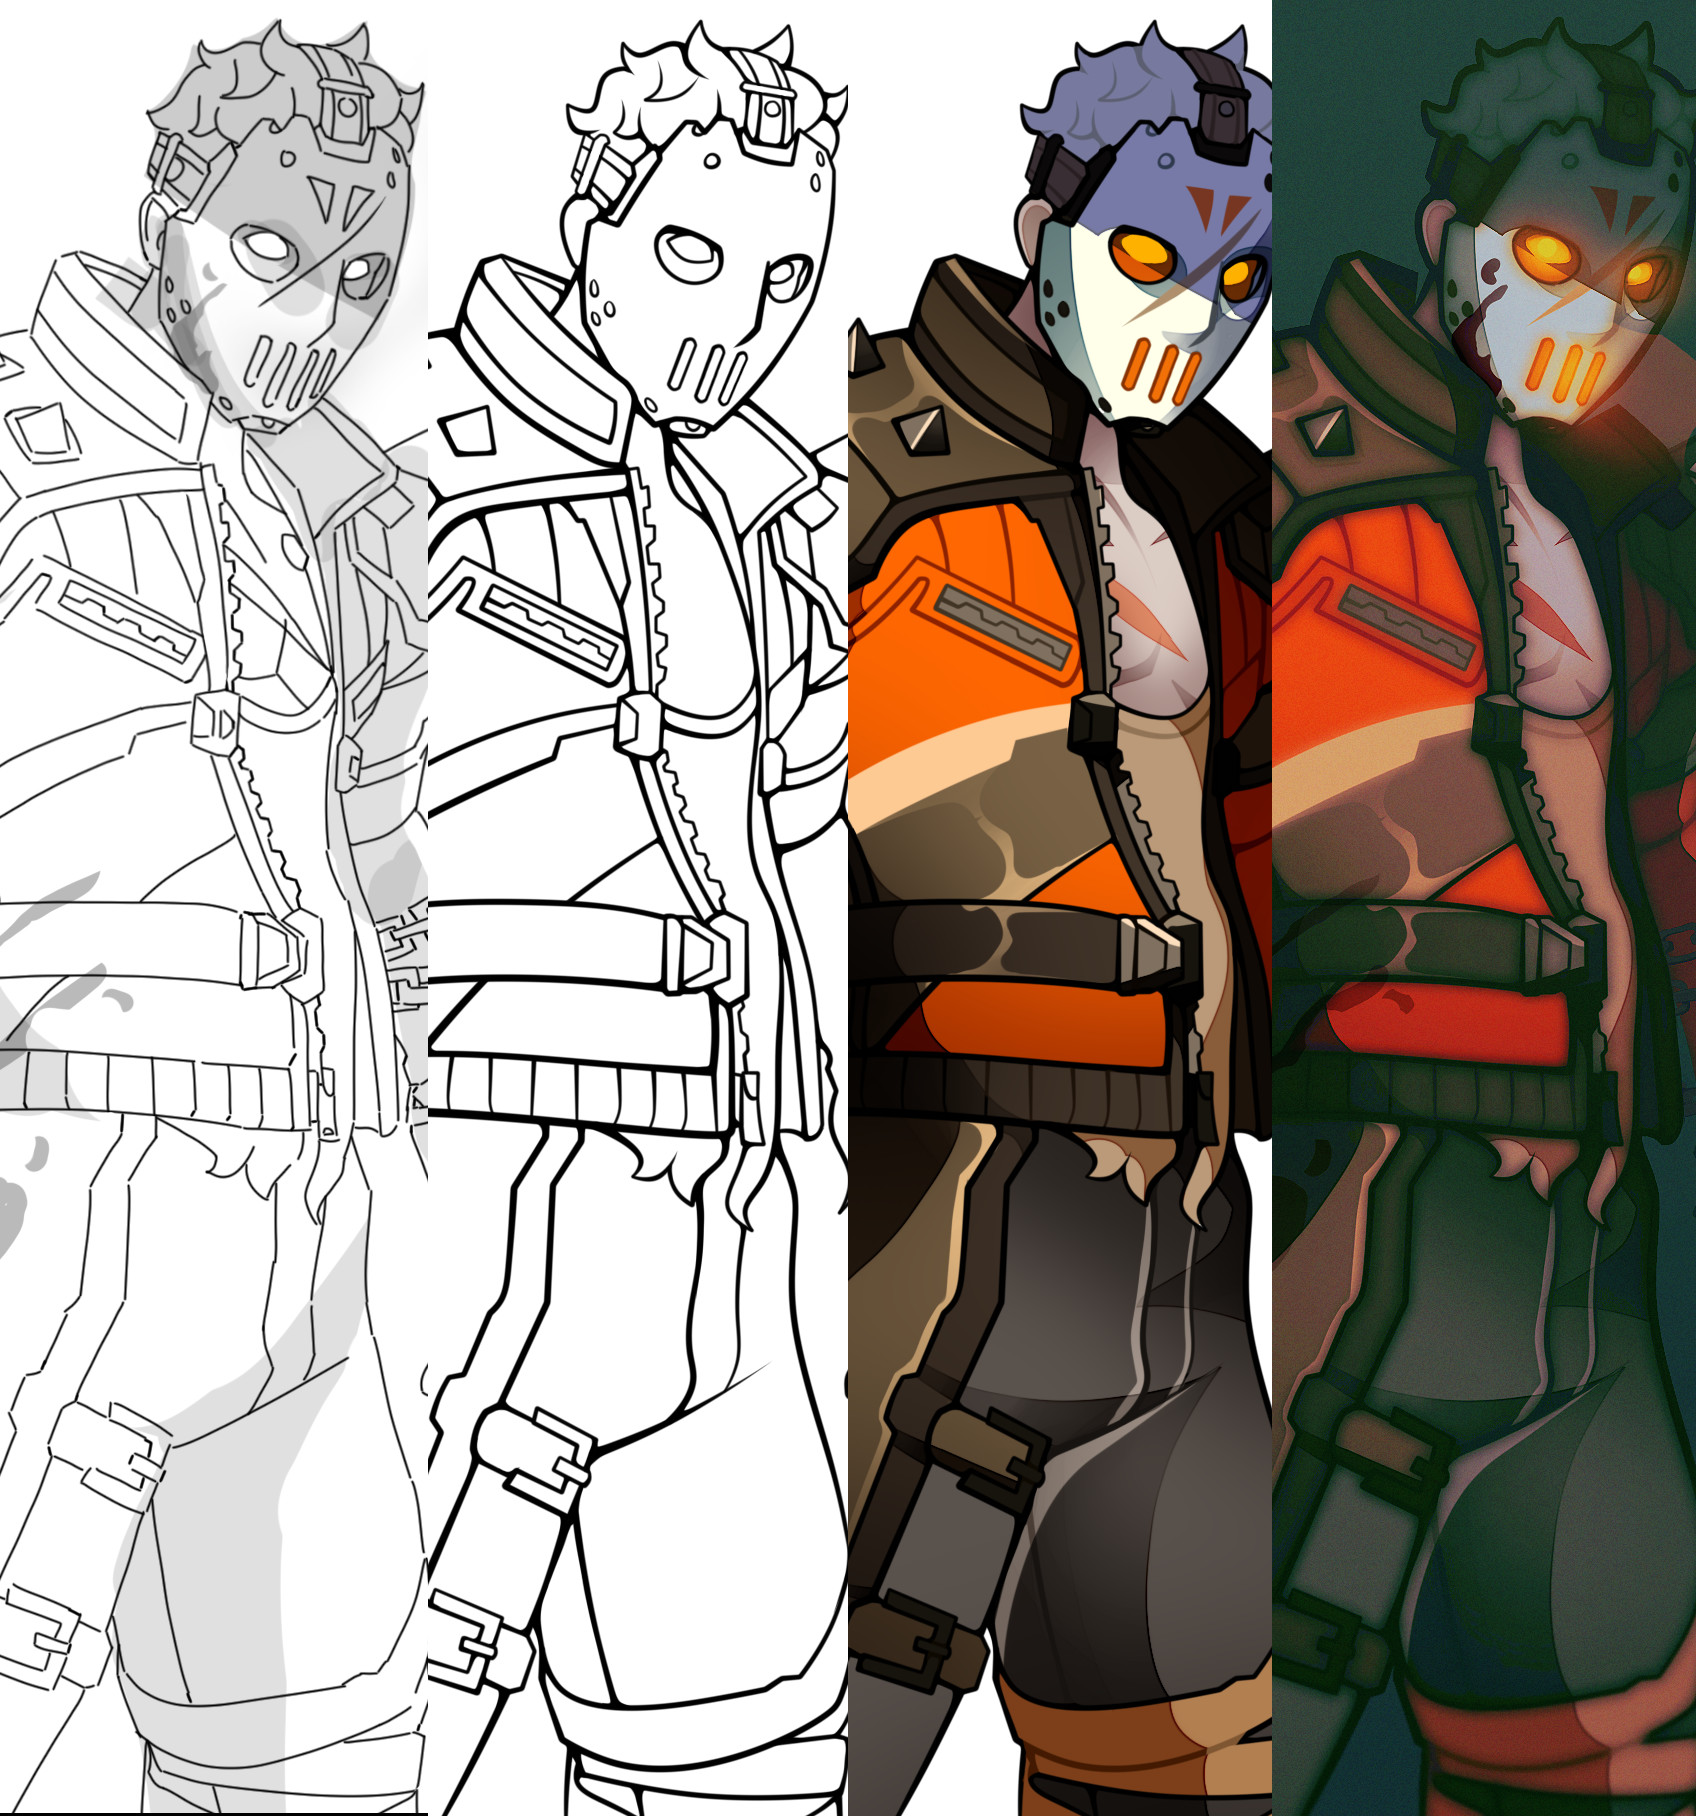 The process of the illustration.